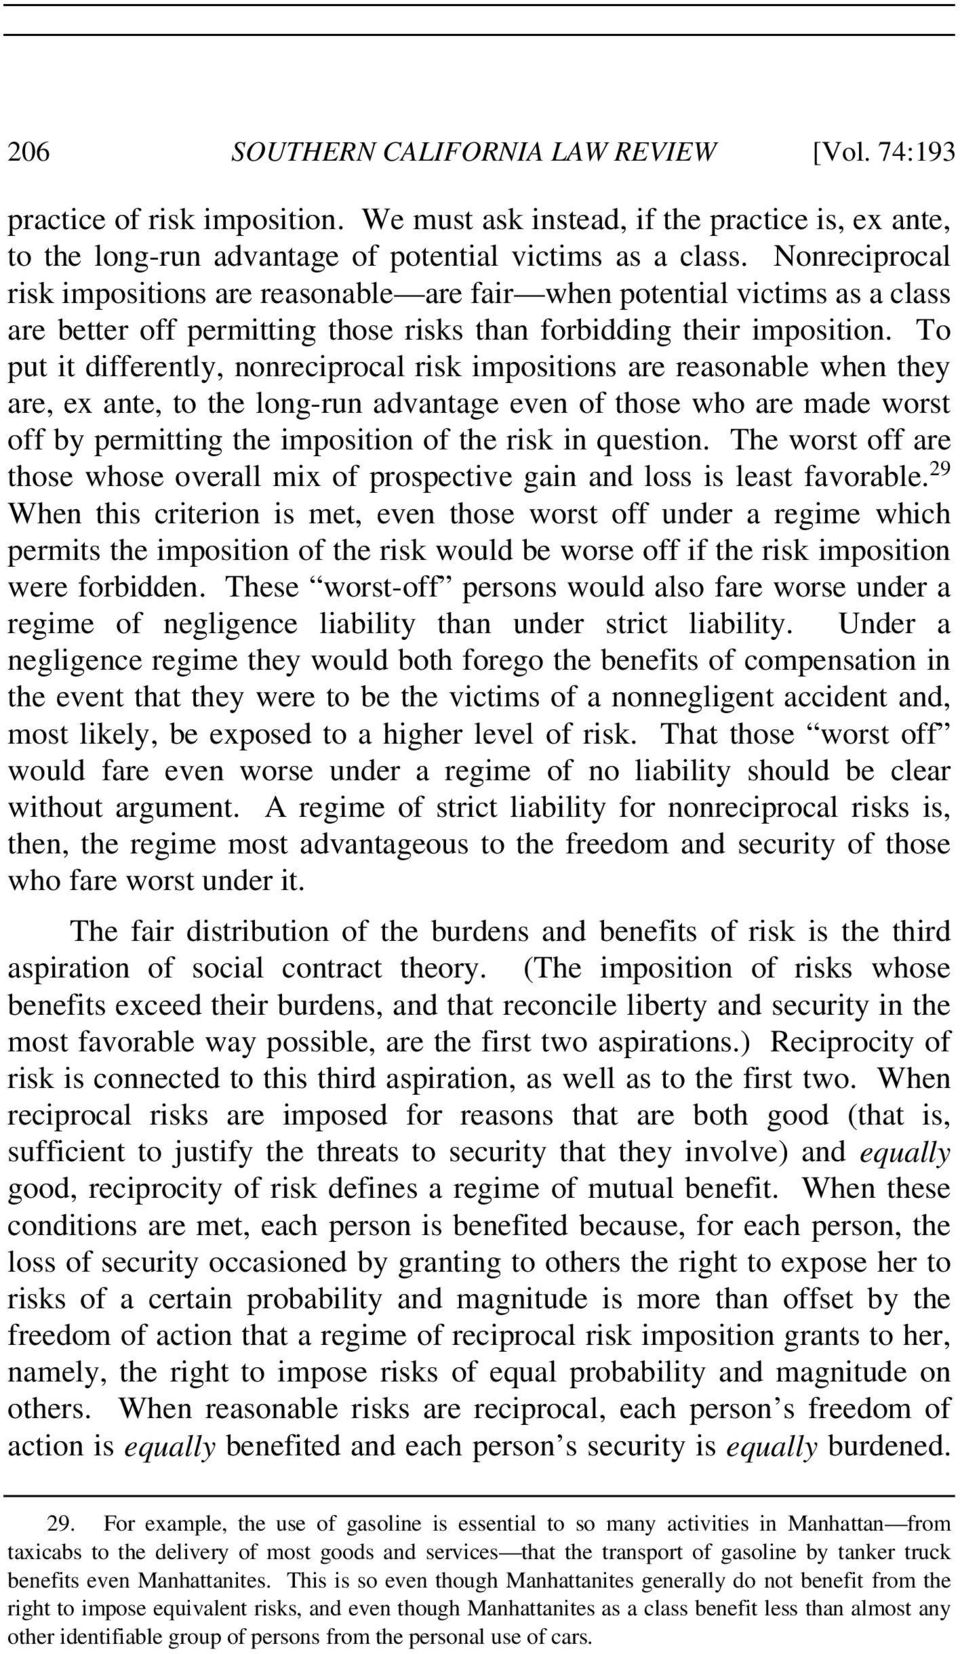 To put it differently, nonreciprocal risk impositions are reasonable when they are, ex ante, to the long-run advantage even of those who are made worst off by permitting the imposition of the risk in